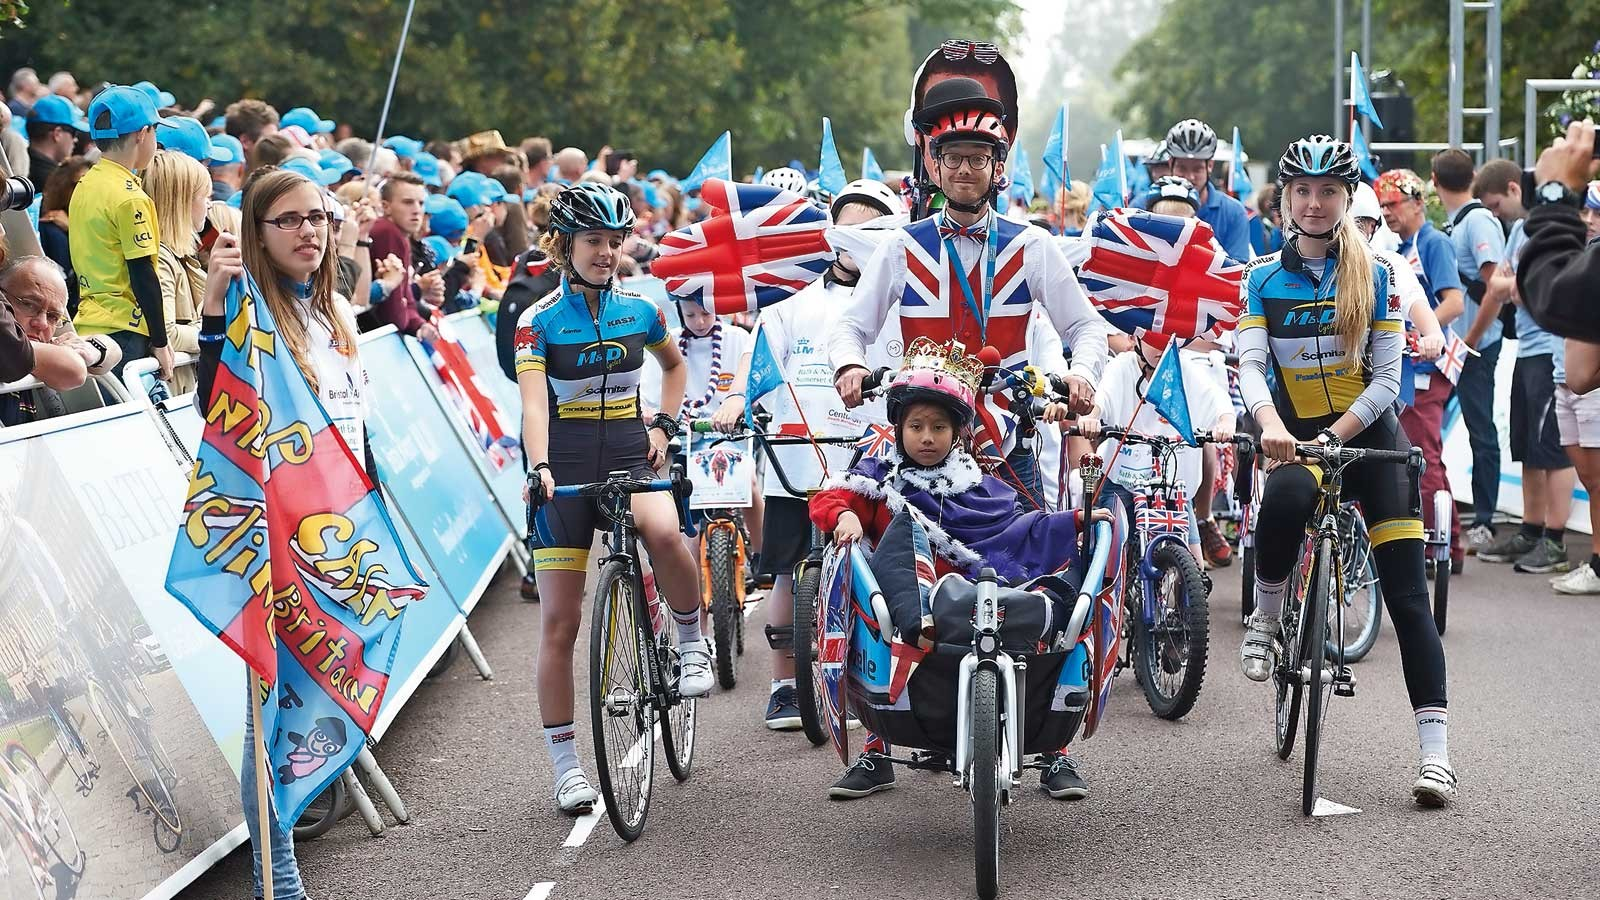 With cycling's popularity at record levels, critics have called on David Cameron to deliver more